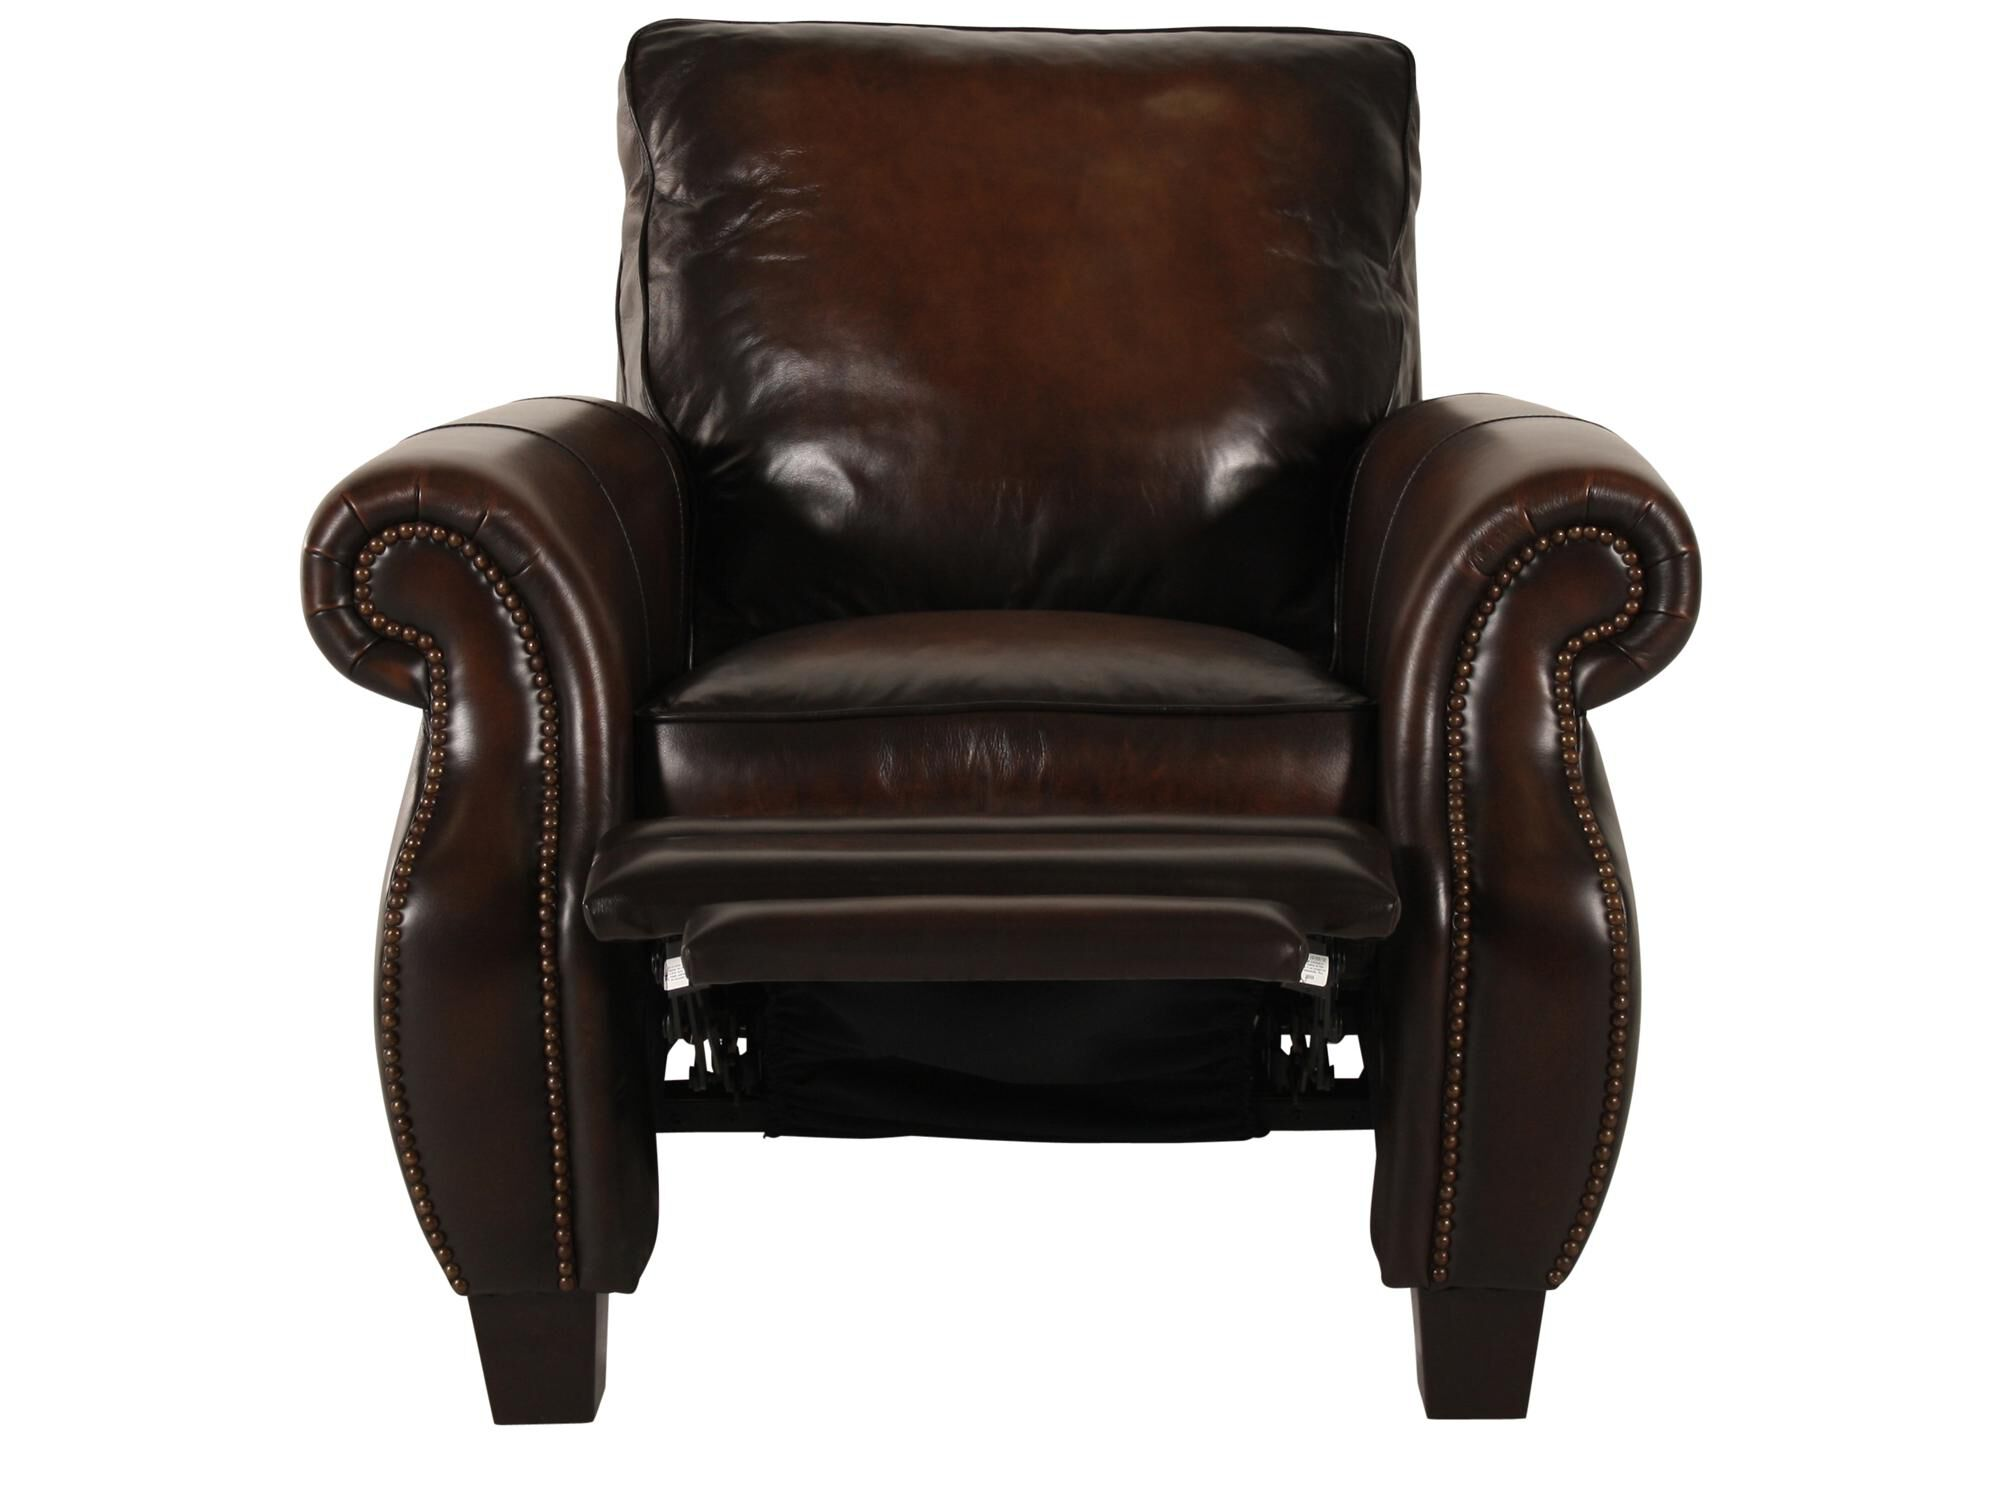 bernhardt brown leather club chair amazon silver covers nailhead accented 37 5 recliner in dark mathis brothers furniture